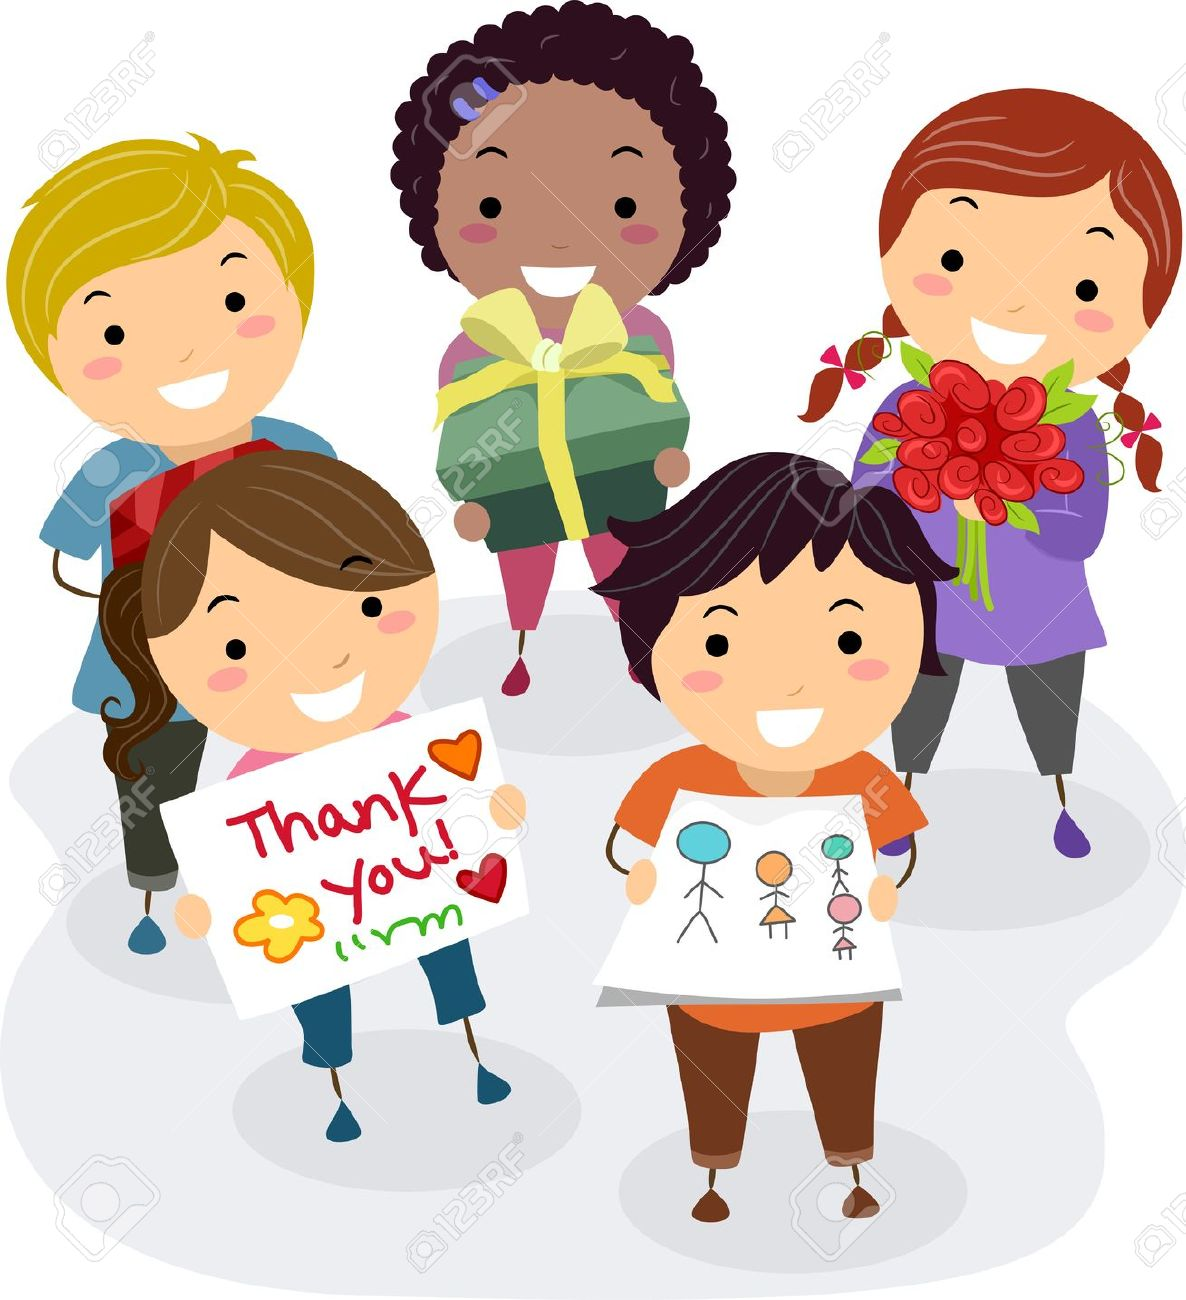 Clipart grateful png freeuse stock Thankful People Clipart - Clip Art Library #318223 - Clipartimage.com png freeuse stock